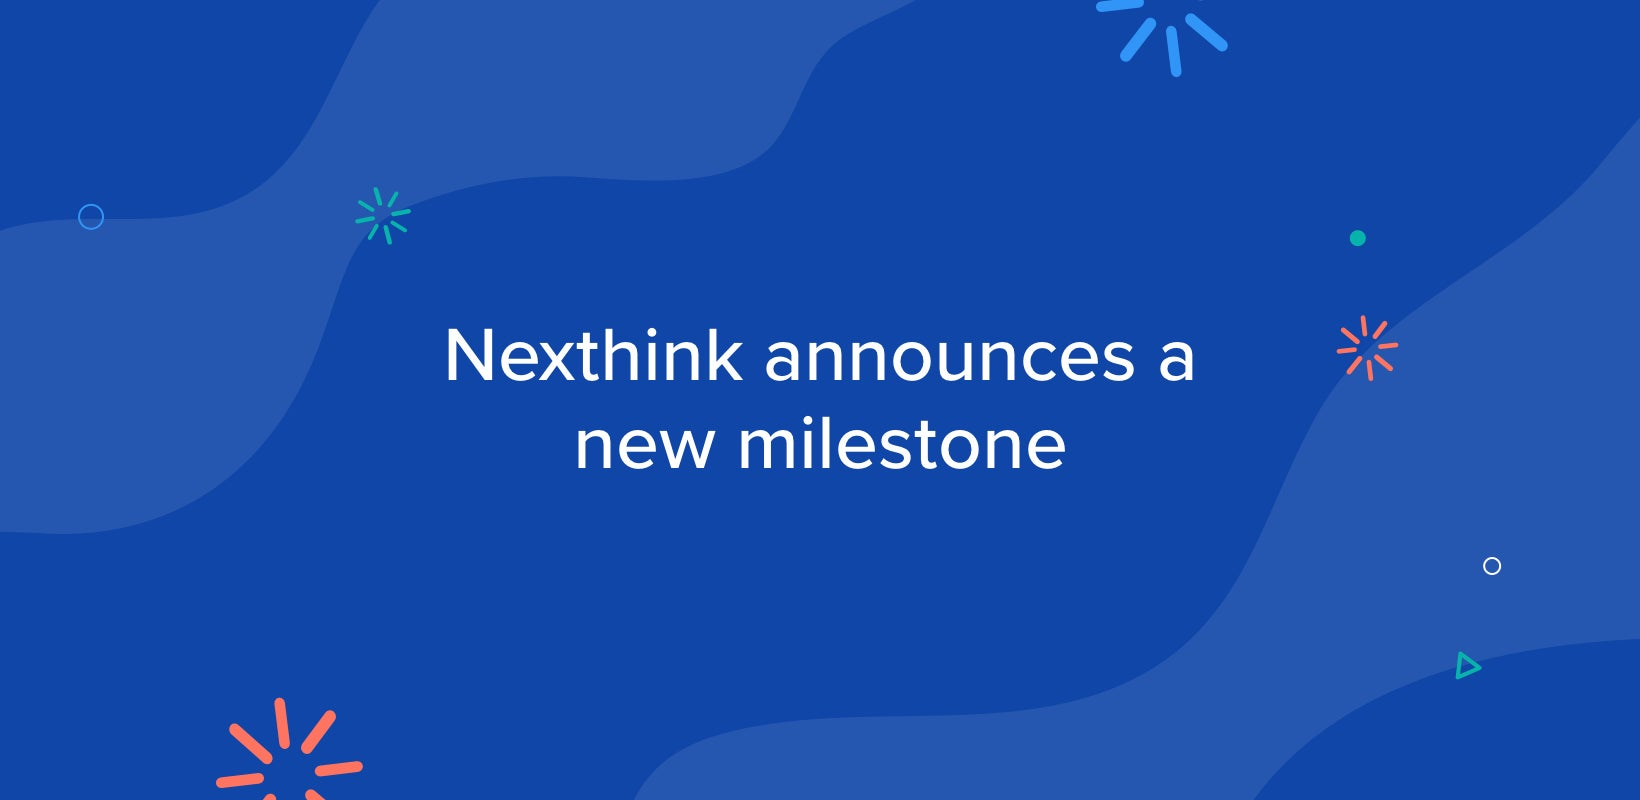 Nexthink Reaches $1.1 Billion Valuation with $180M in Series D Financing Round, Names Former Adobe CEO to its Board of Directors